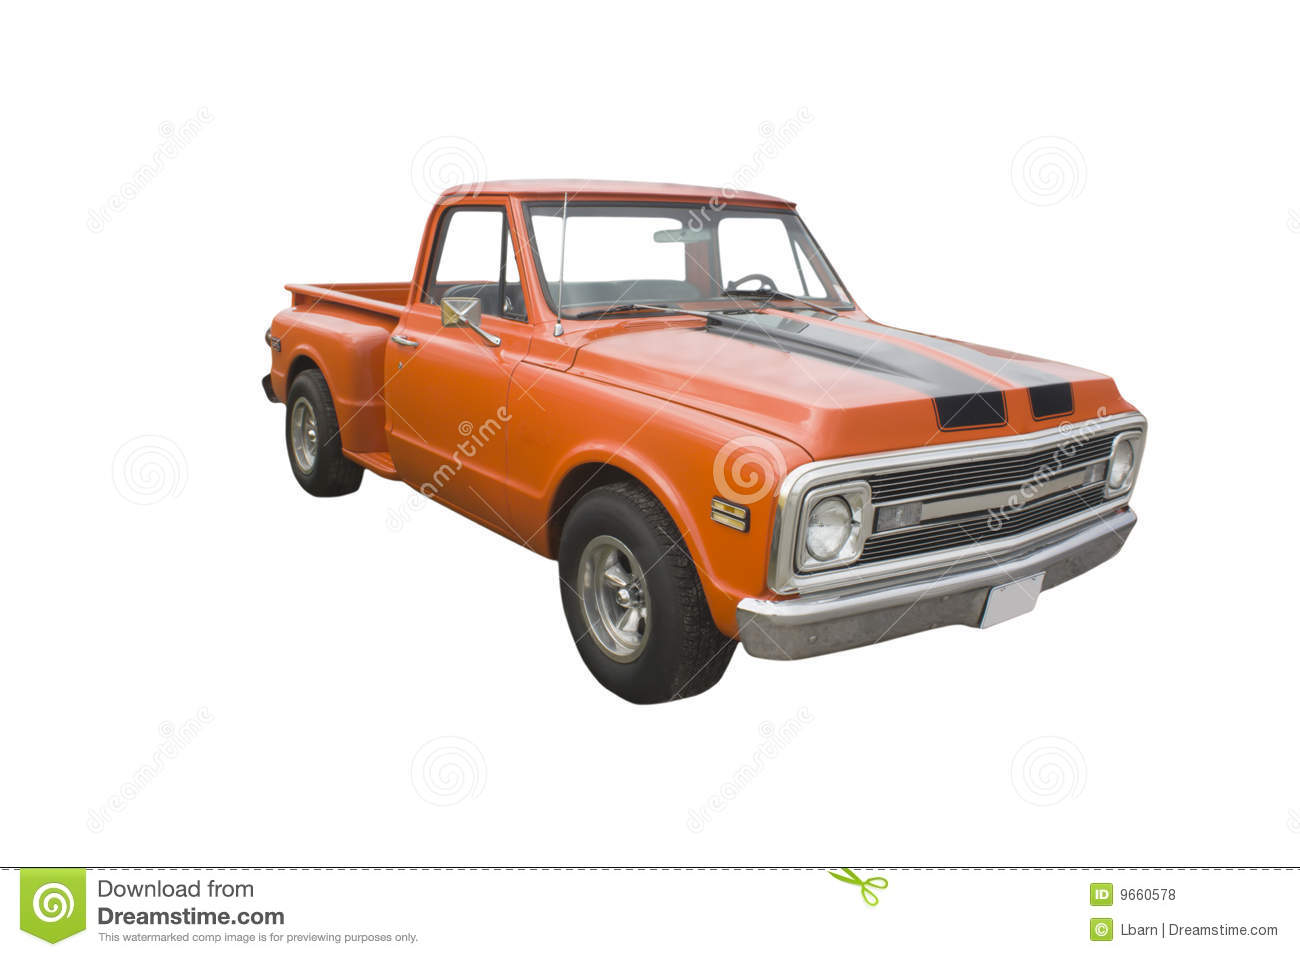 1 506 Orange Pickup Photos Free Royalty Free Stock Photos From Dreamstime